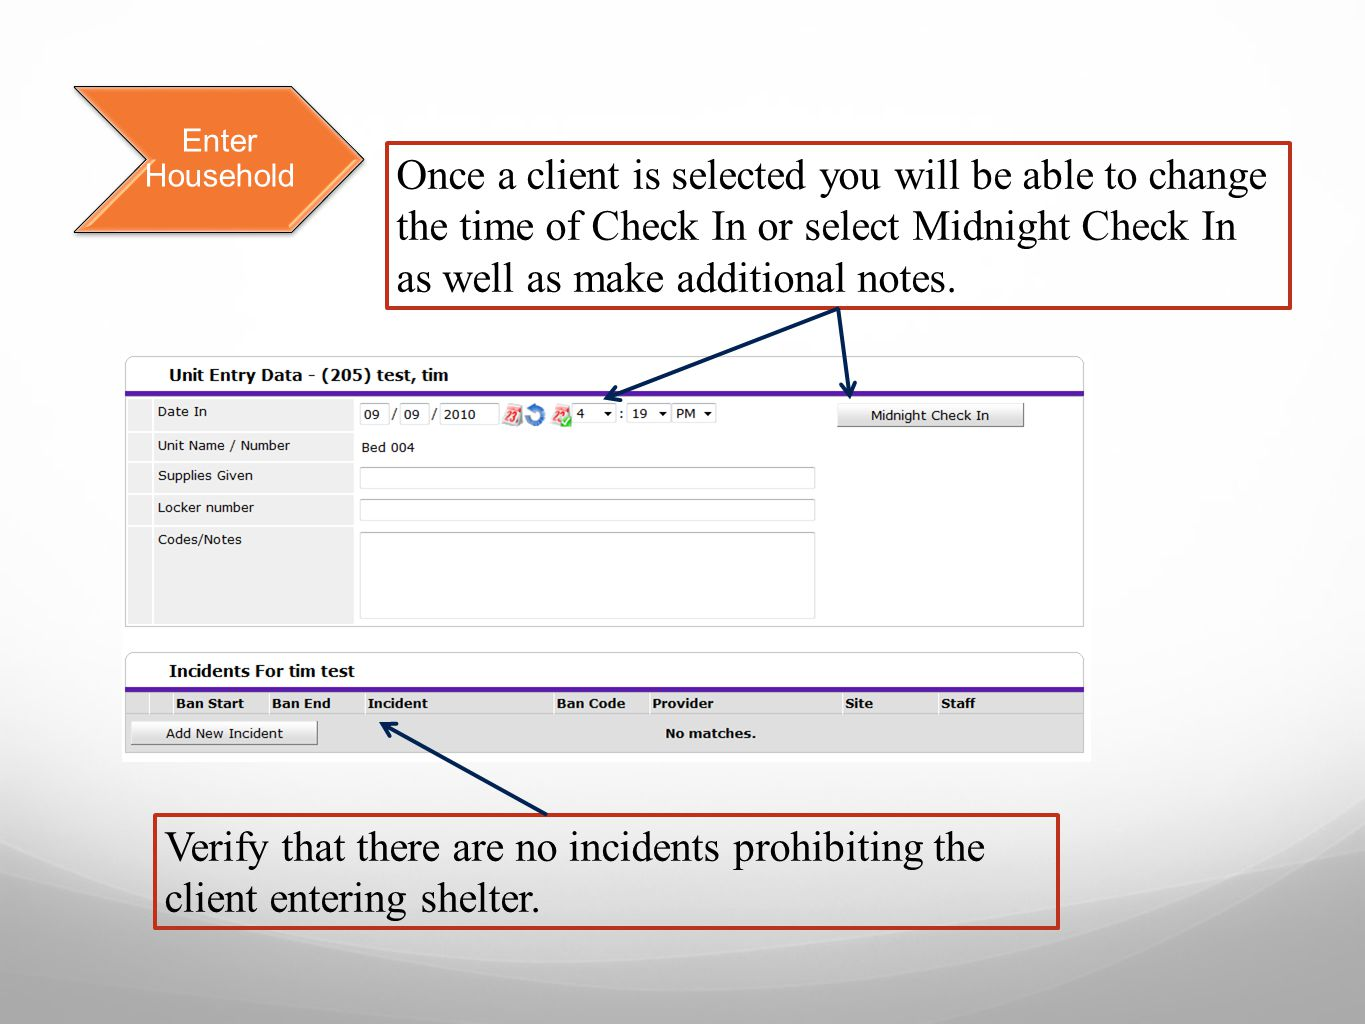 Enter Household Verify that there are no incidents prohibiting the client entering shelter.